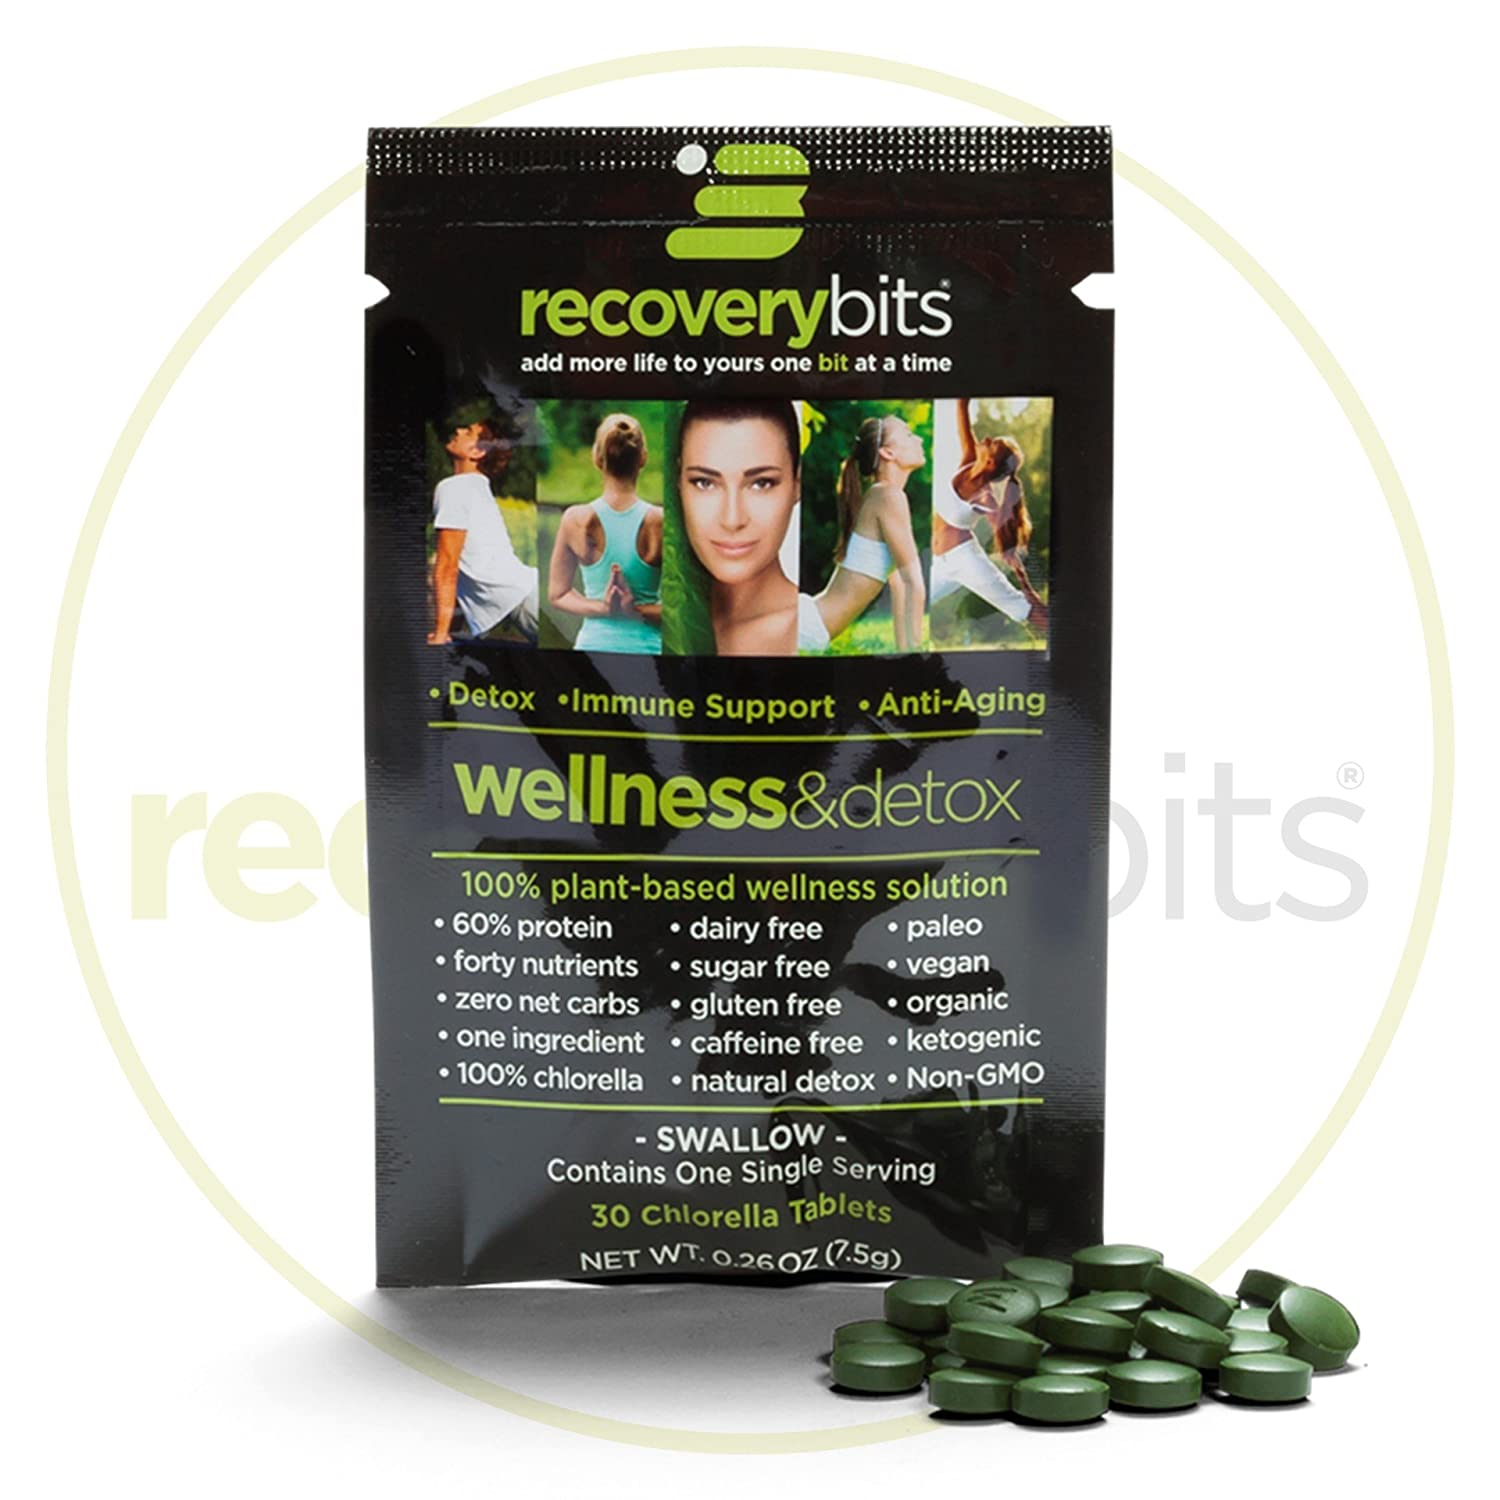 RECOVERYbits Pure Organic Chlorella Tablets Box of 30 Single Servings 7500mg per serving Cracked Cell Wall, Non-GMO, Non-Irradiated, Raw, Green Algae Keto, Paleo, Vegan Friendly